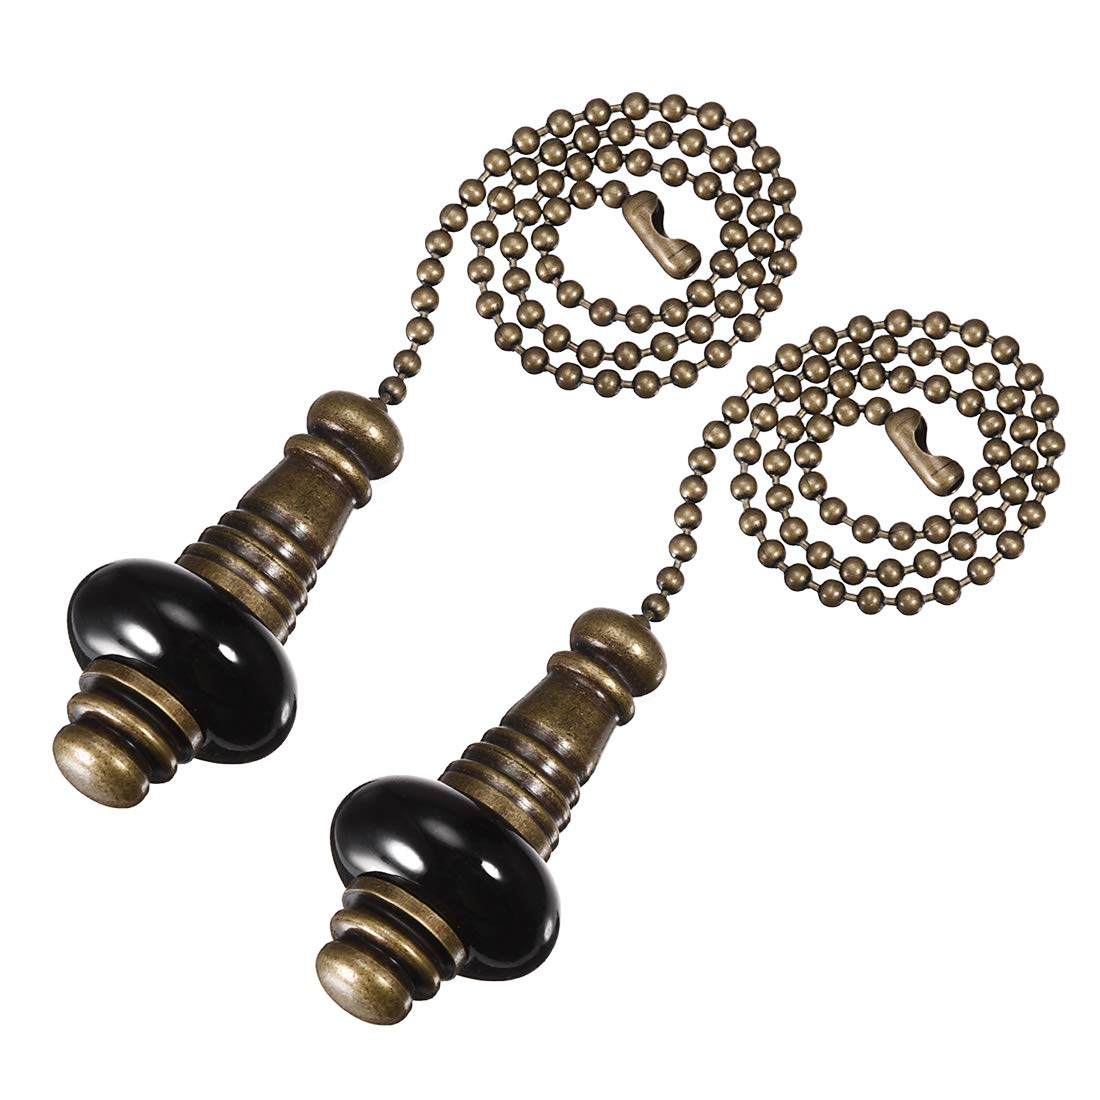 uxcell Ceramic Black Pendant 12 inch Antique Brass Finish Pull Chain for Lighting Fans Pack of 2